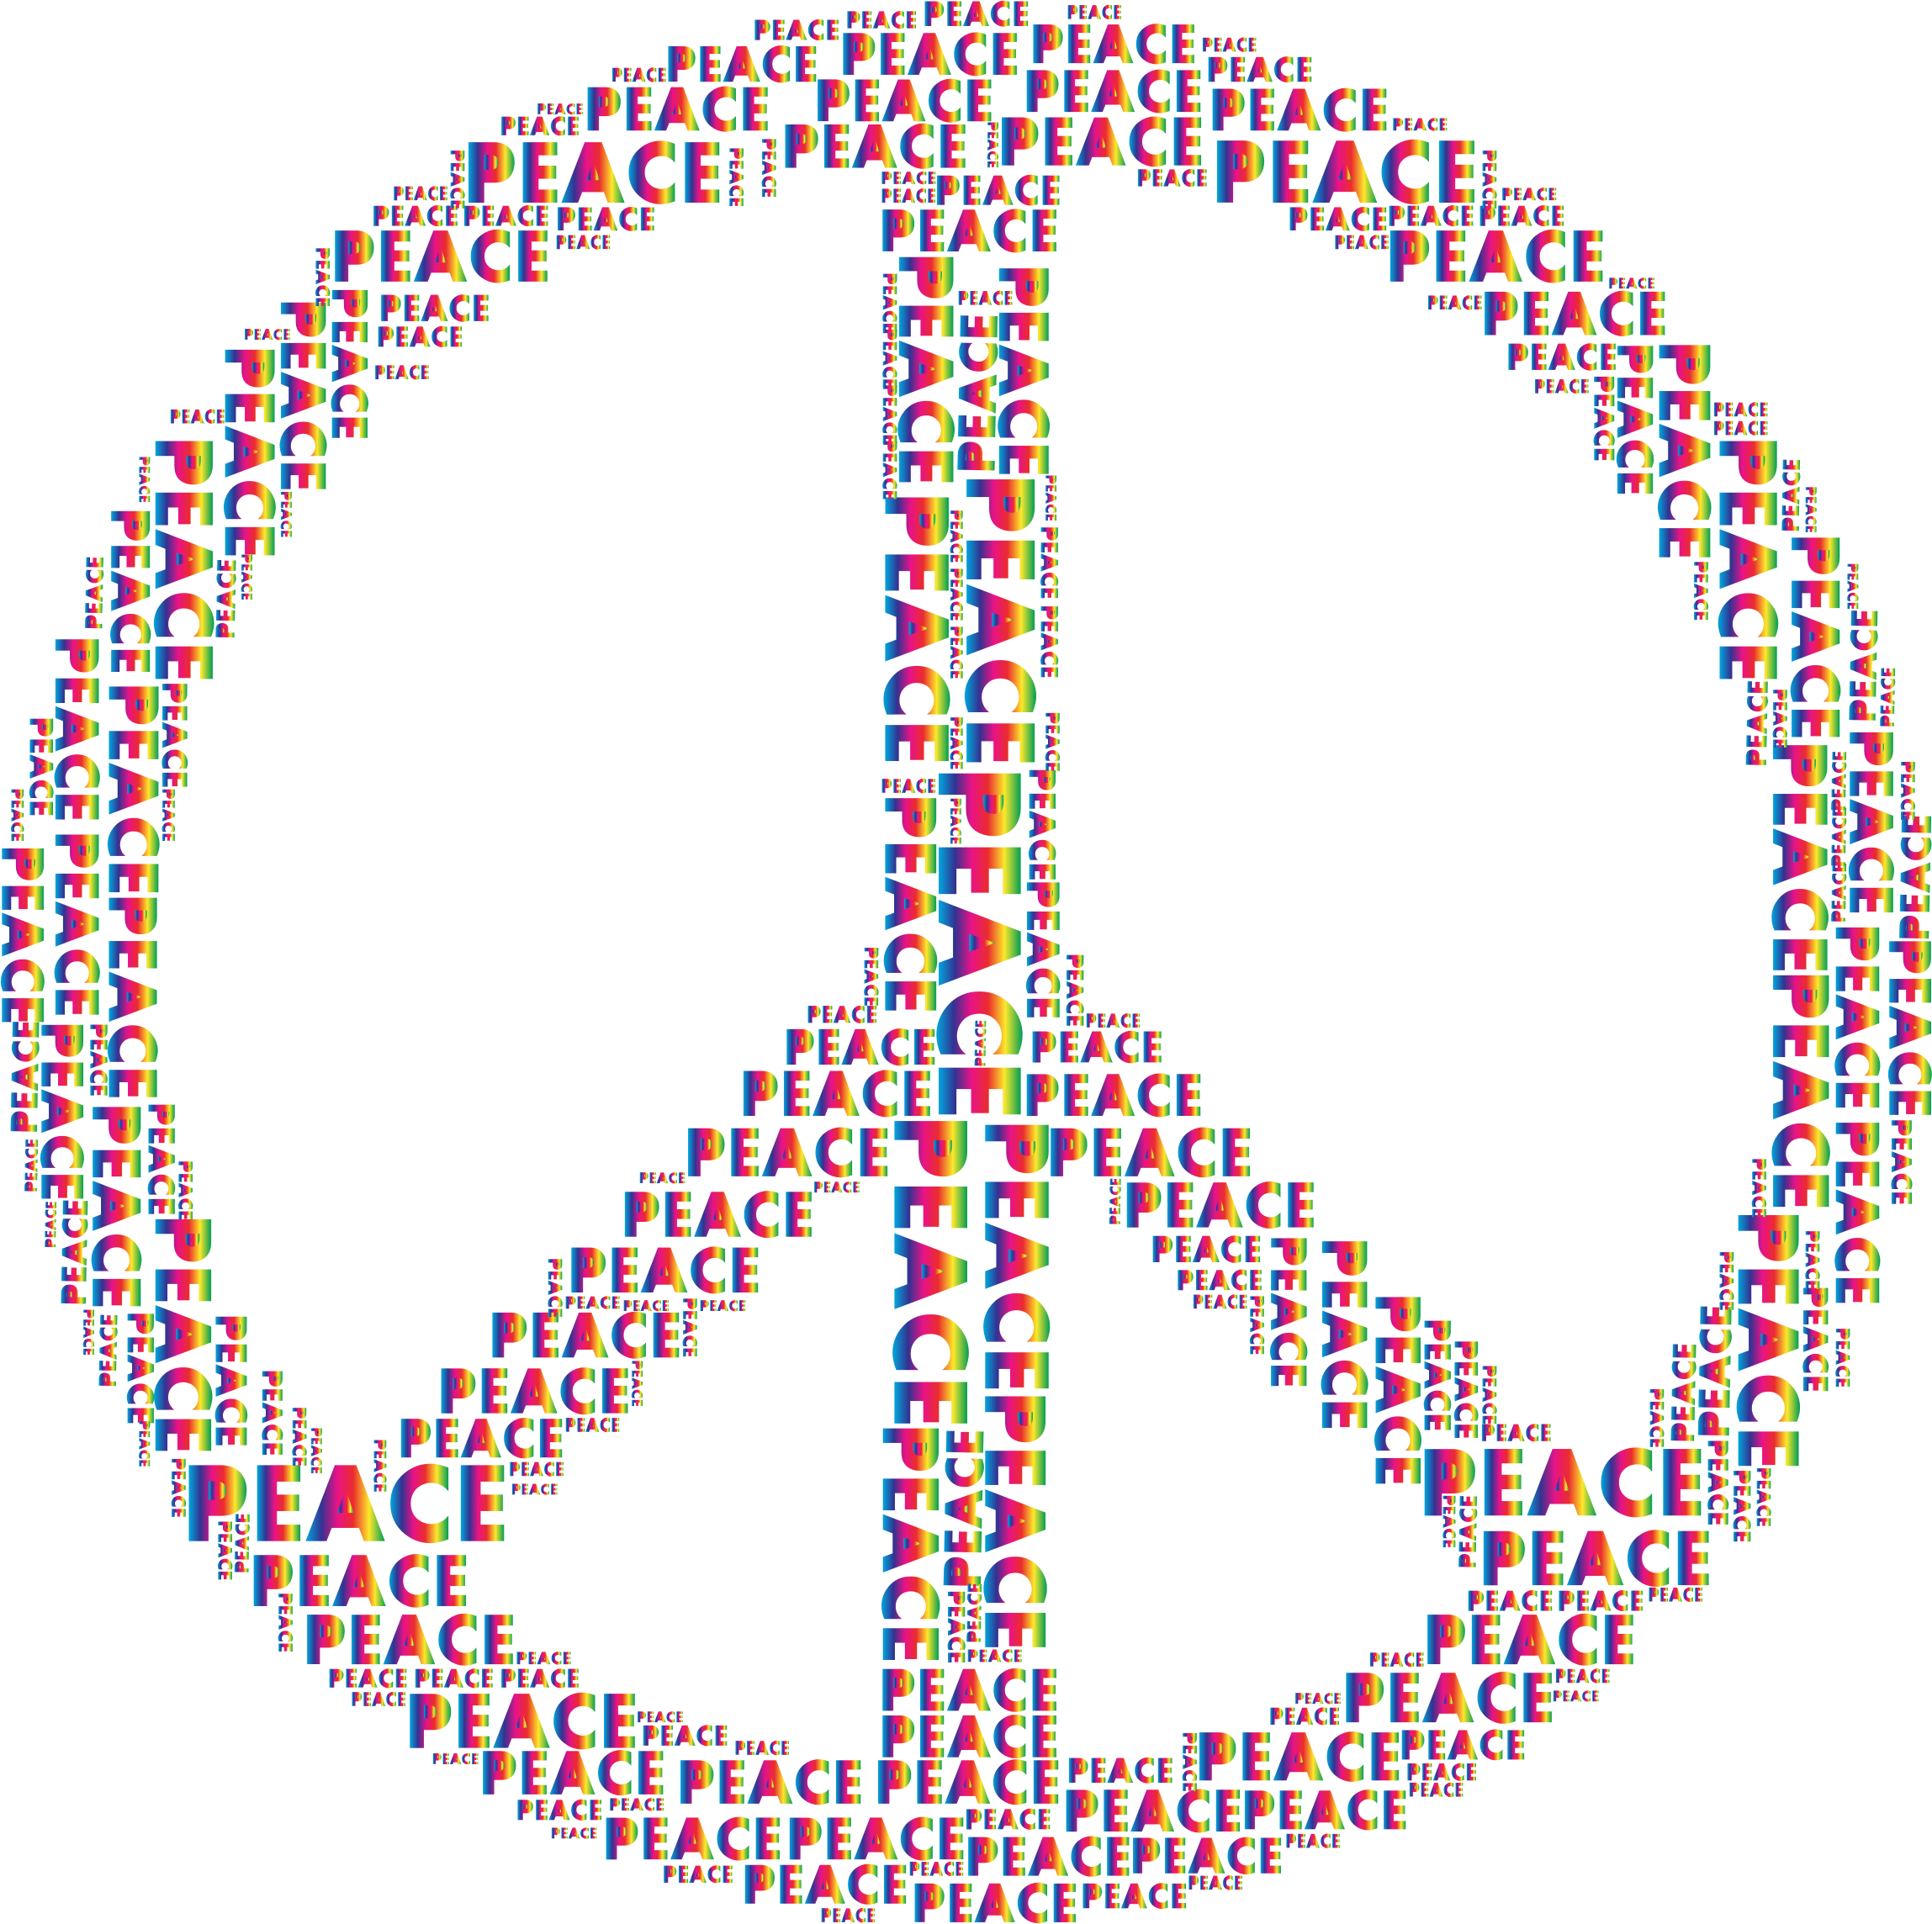 Spectrum Peace Sign Word Cloud No Background by GDJ